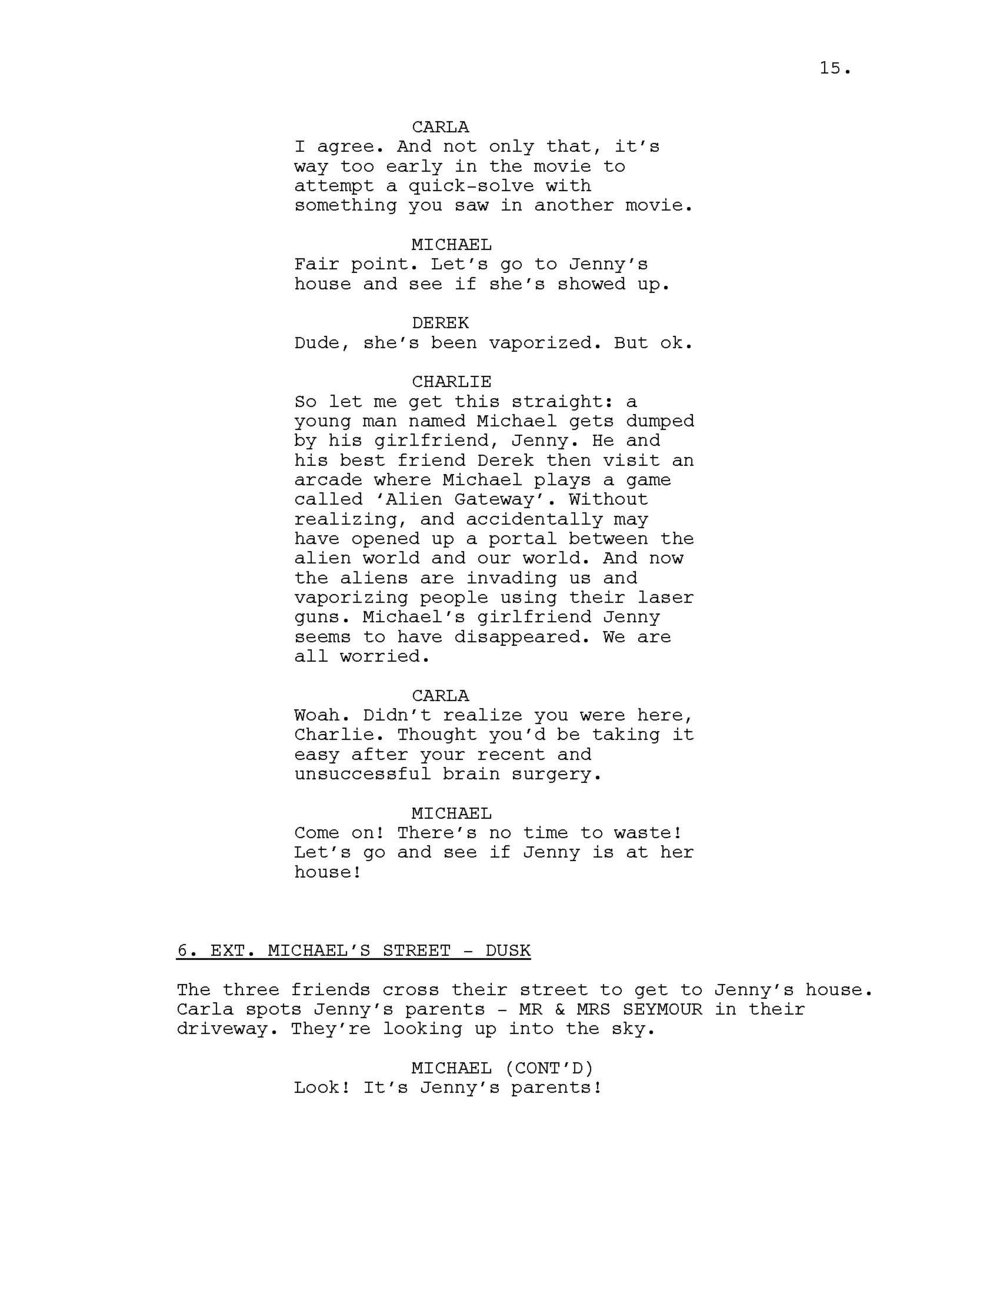 INVISIBLE WORLD SCRIPT_Page_016.jpg